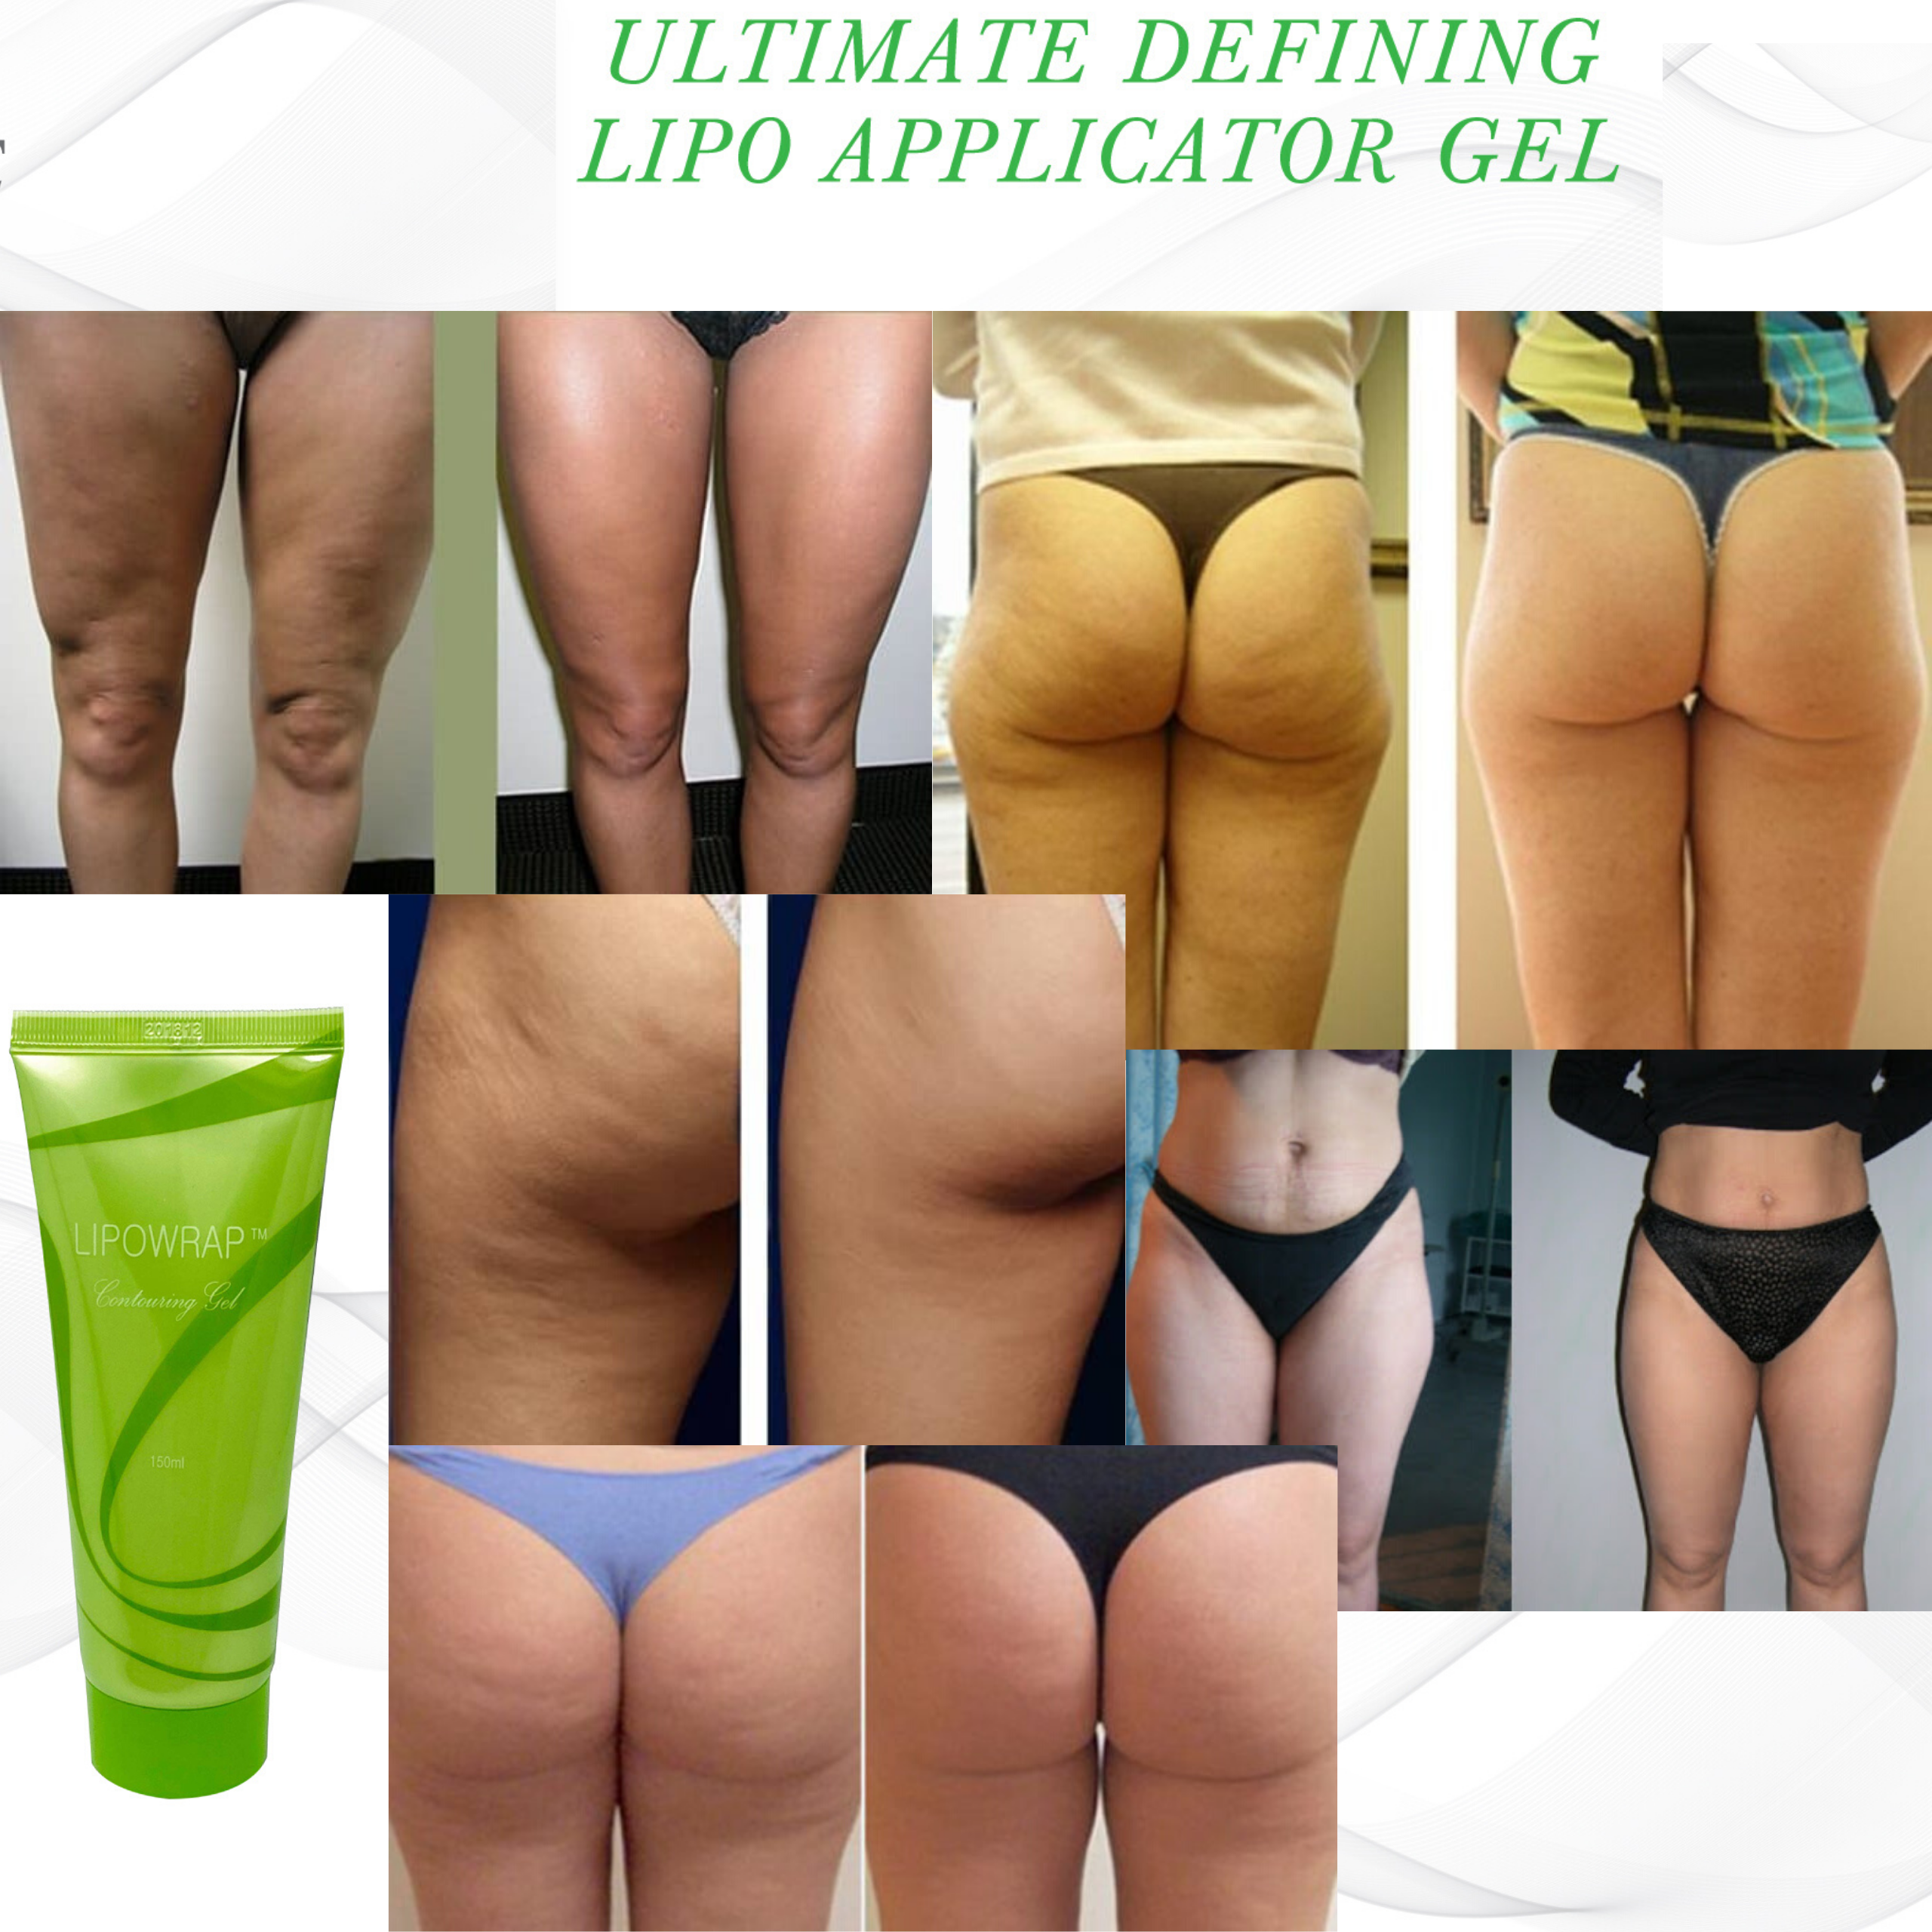 lipo applicator gel before and after